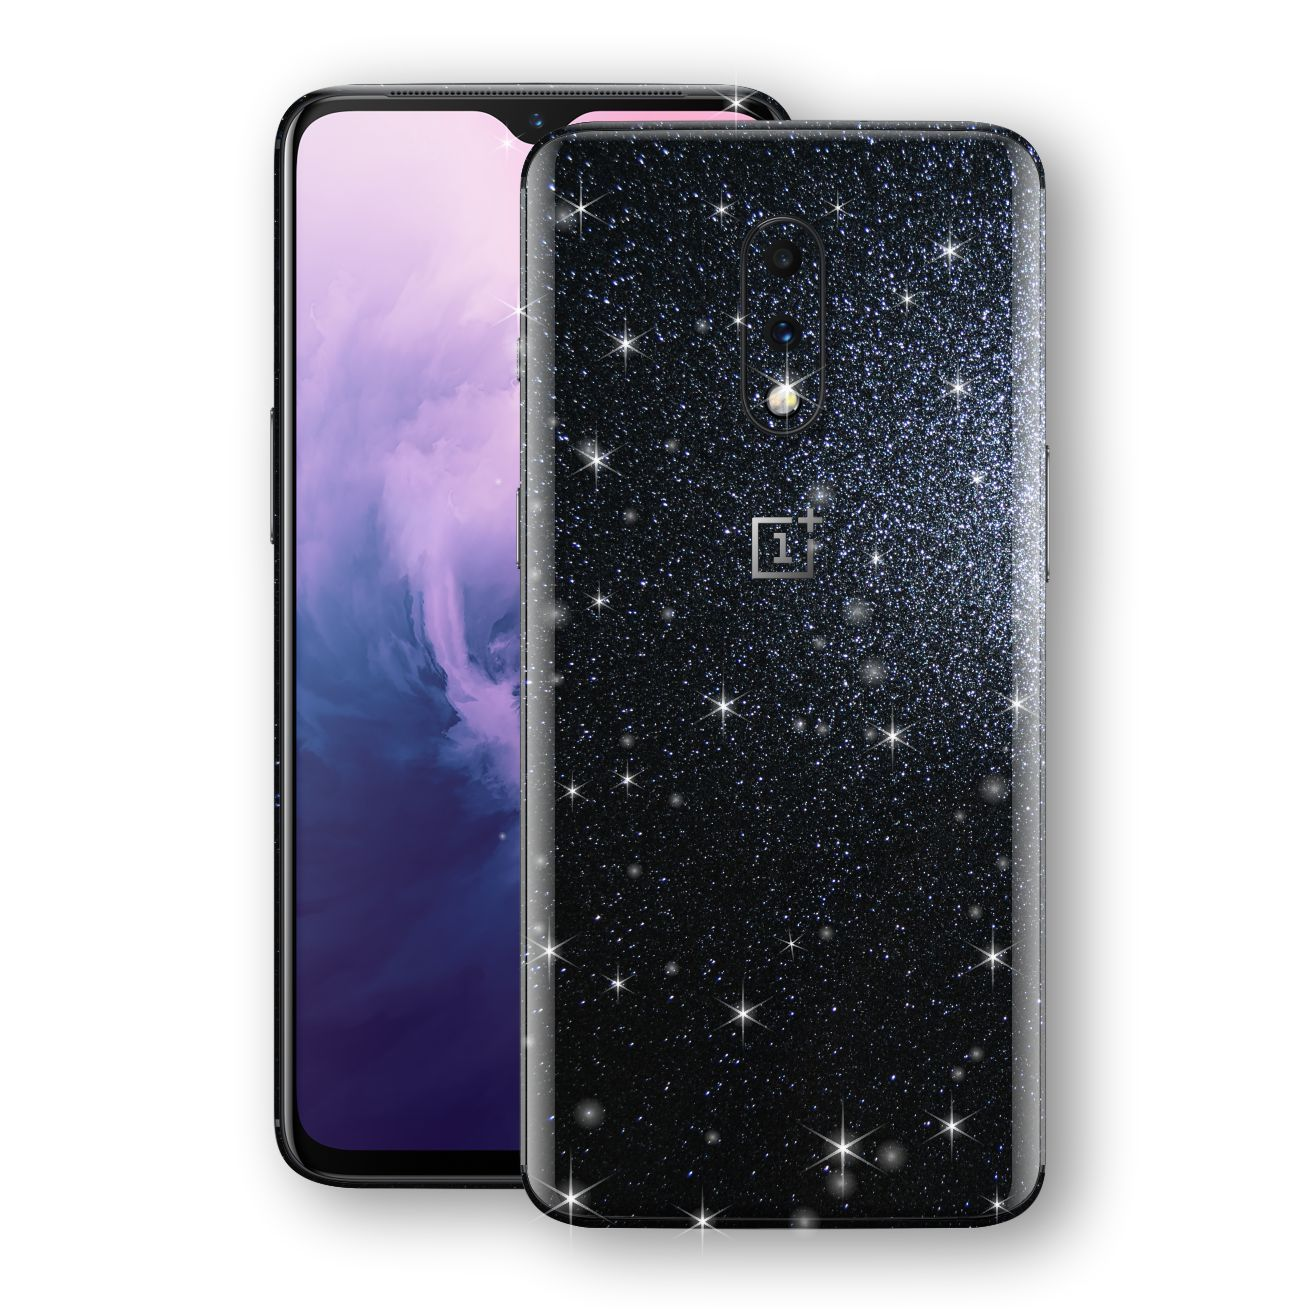 OnePlus 7 Diamond Black Shimmering, Sparkling, Glitter Skin, Decal, Wrap, Protector, Cover by EasySkinz | EasySkinz.com